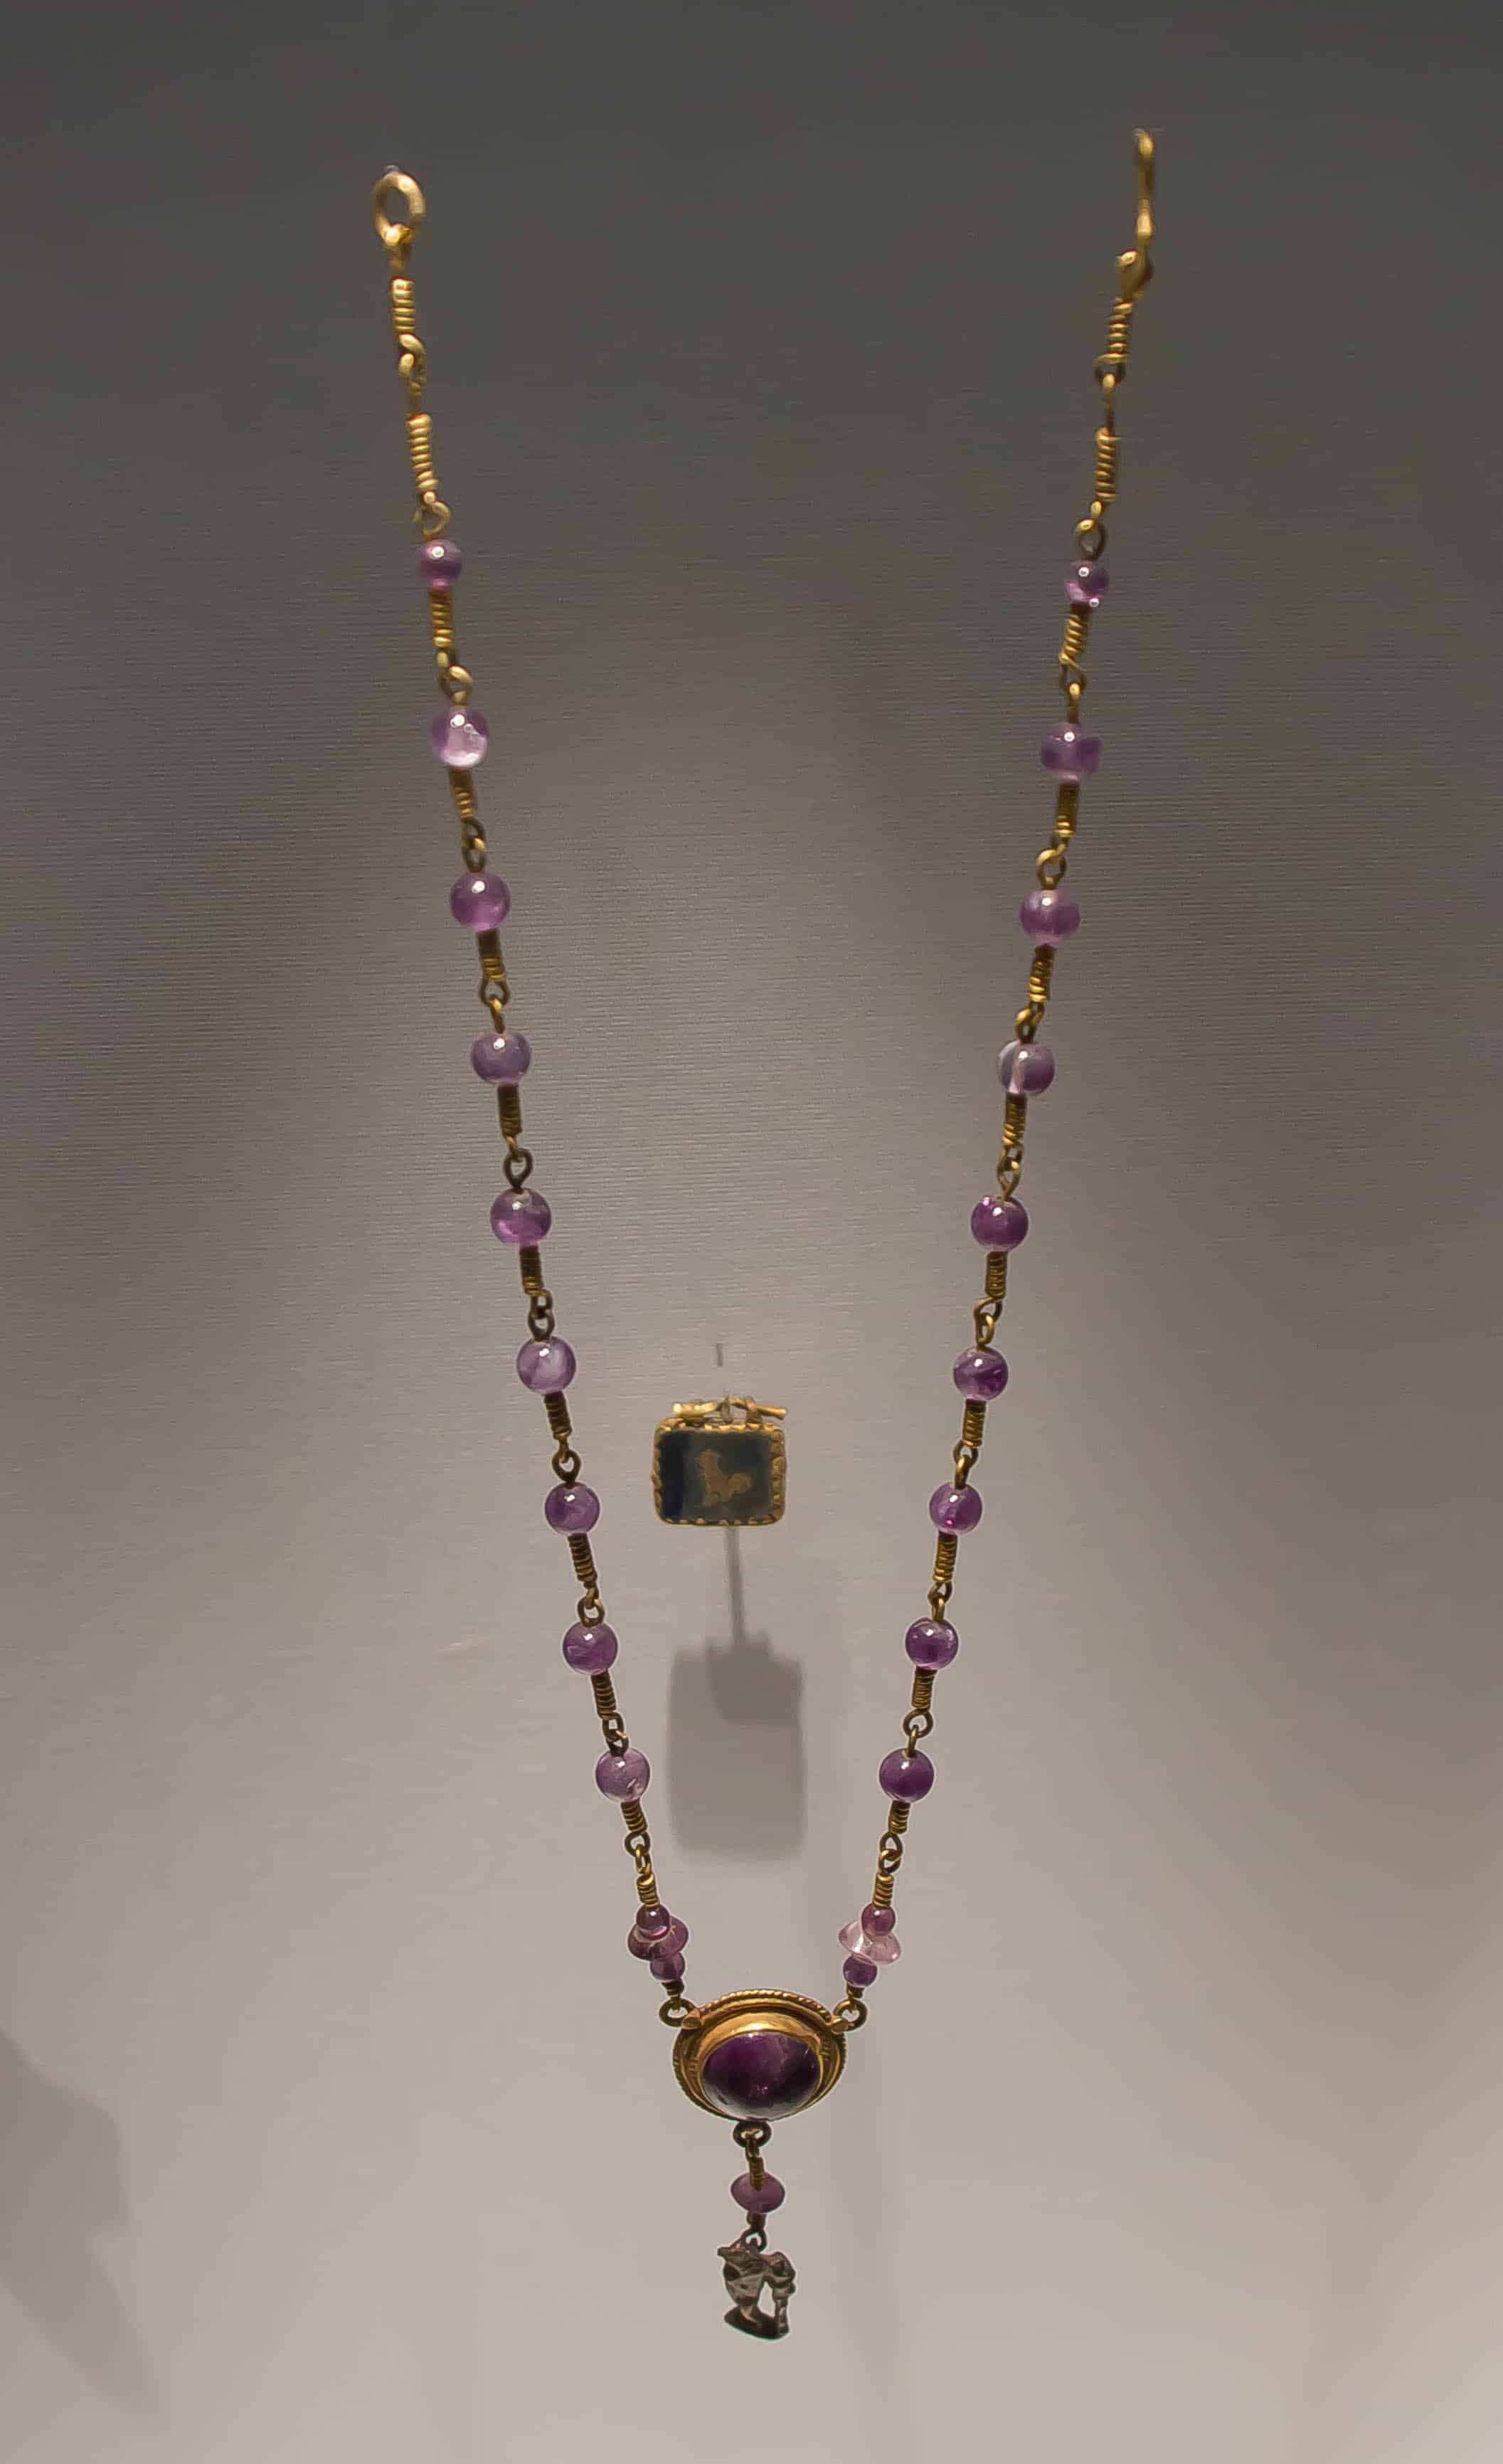 Ancient Amethyst Necklace.jpg